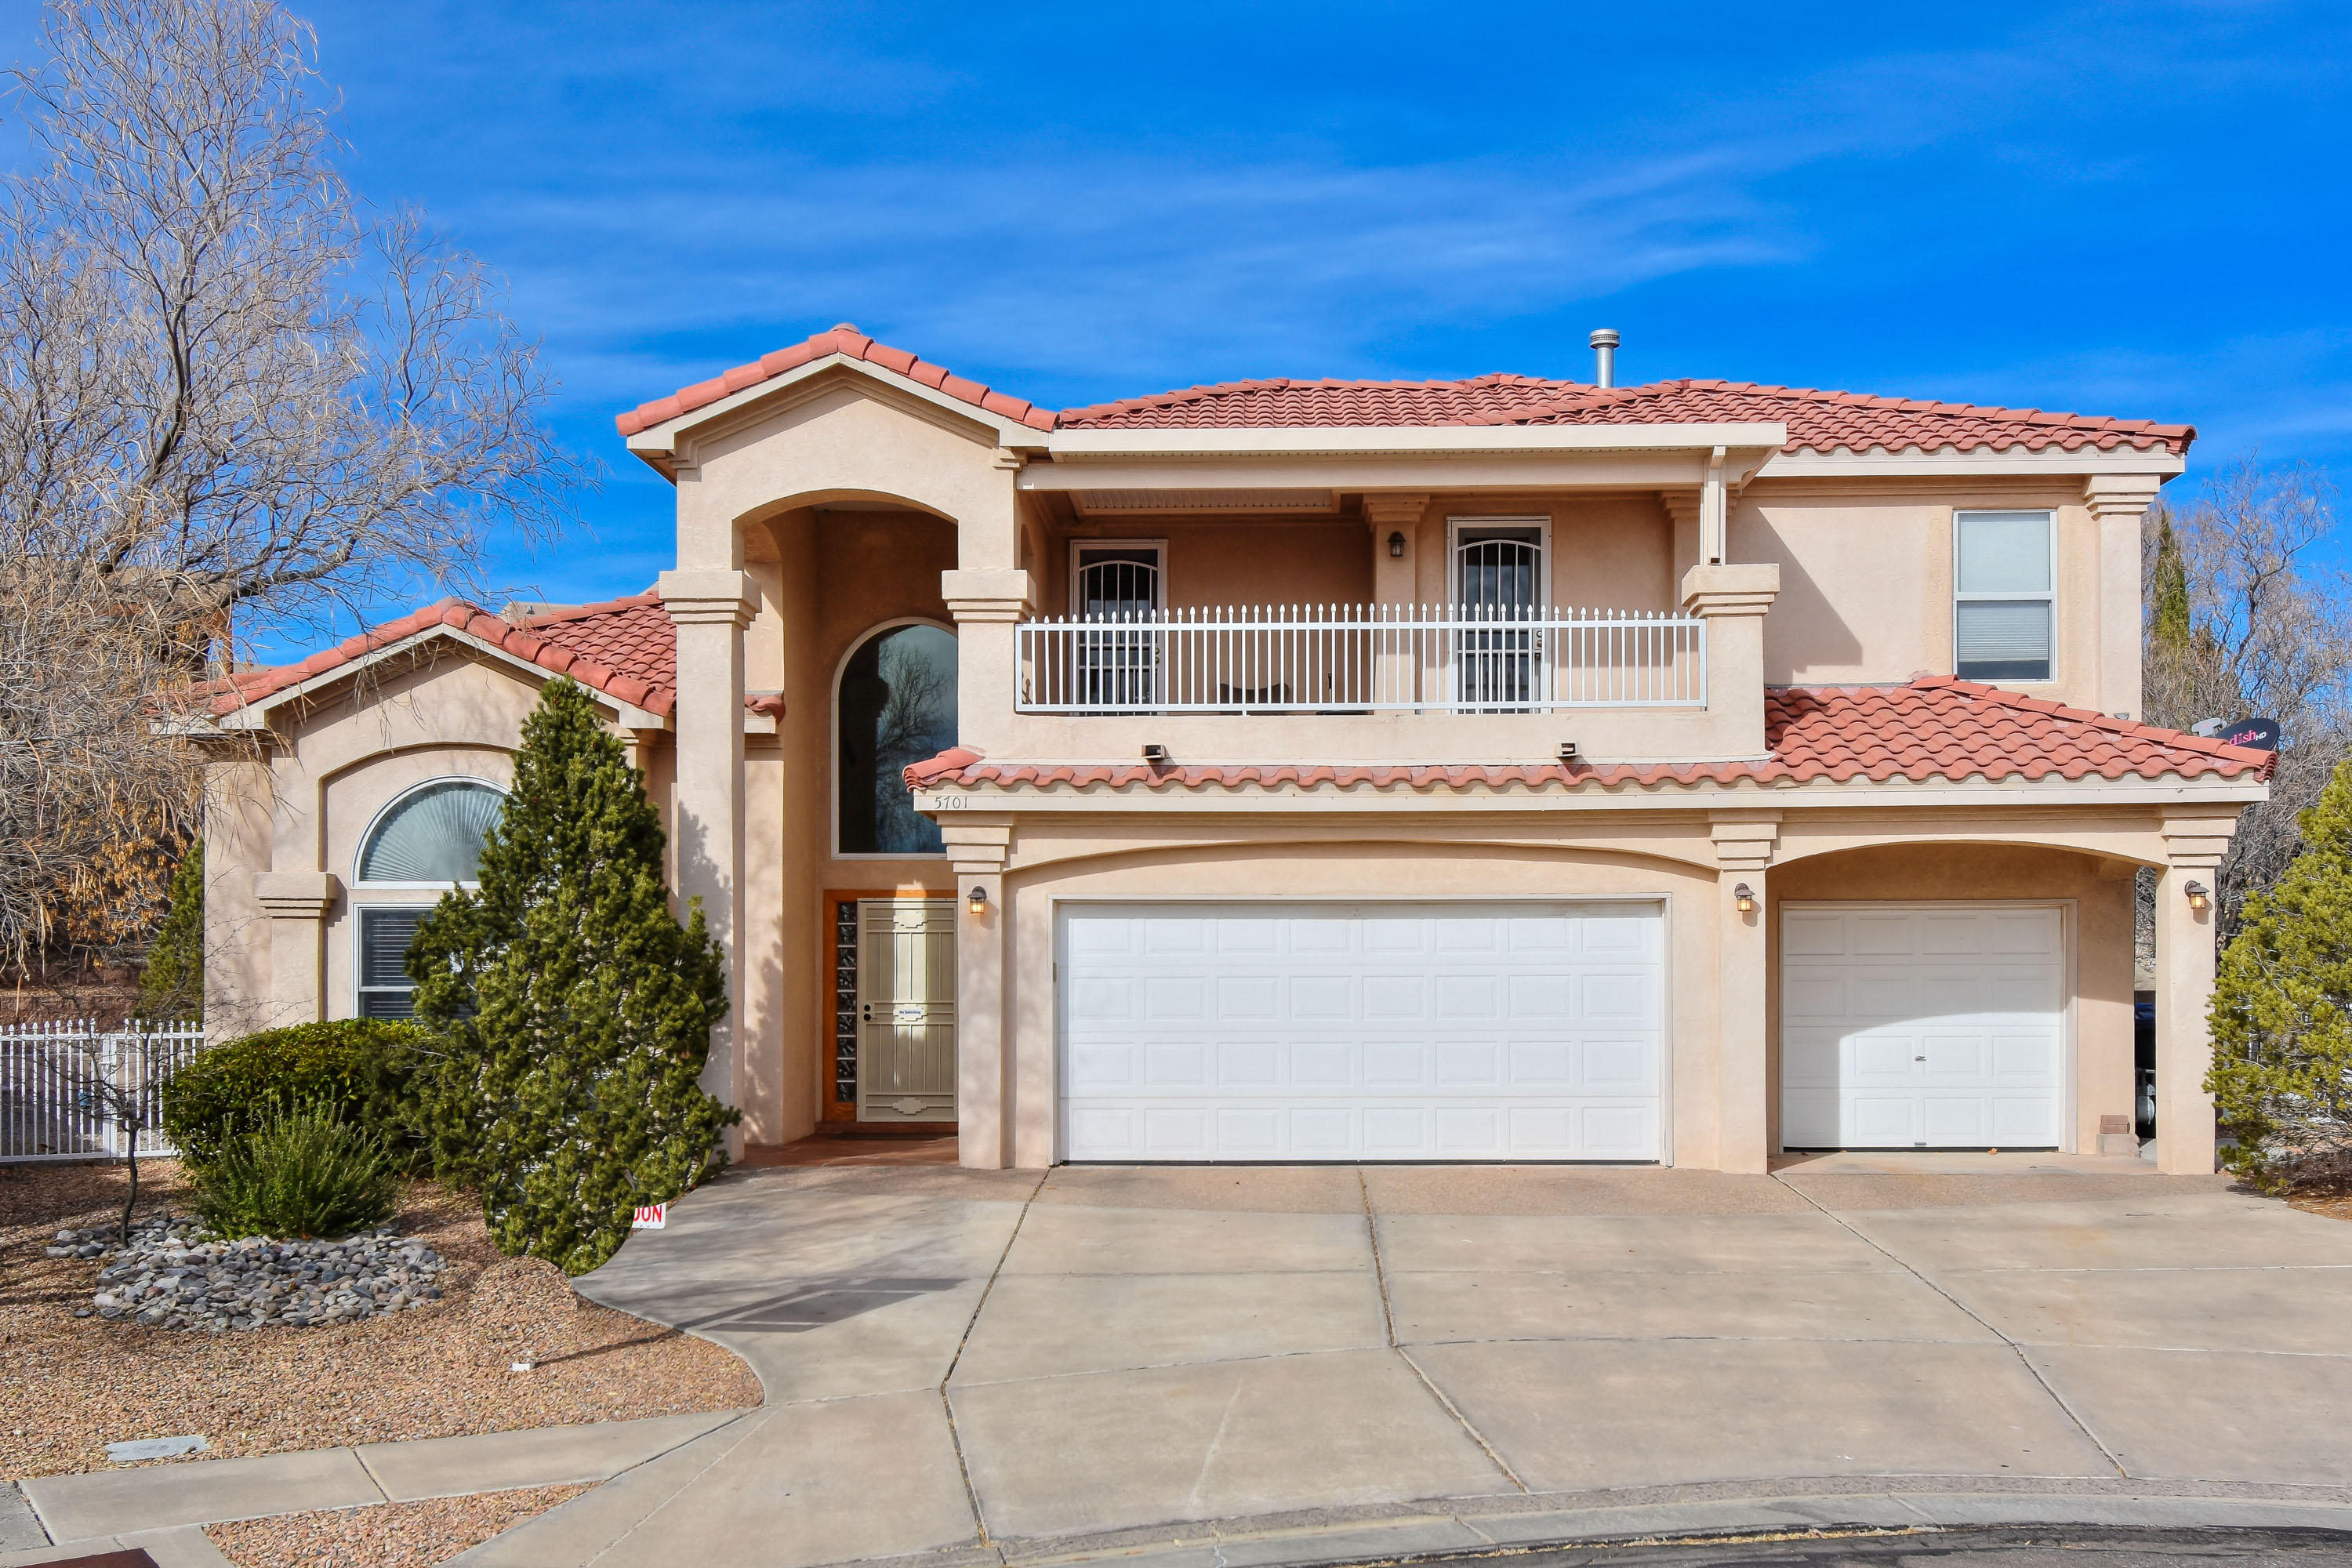 Northwest Albuquerque and Northwest Heights Homes for Sale -  Cul De Sac,  5701 NW La Colonia Drive